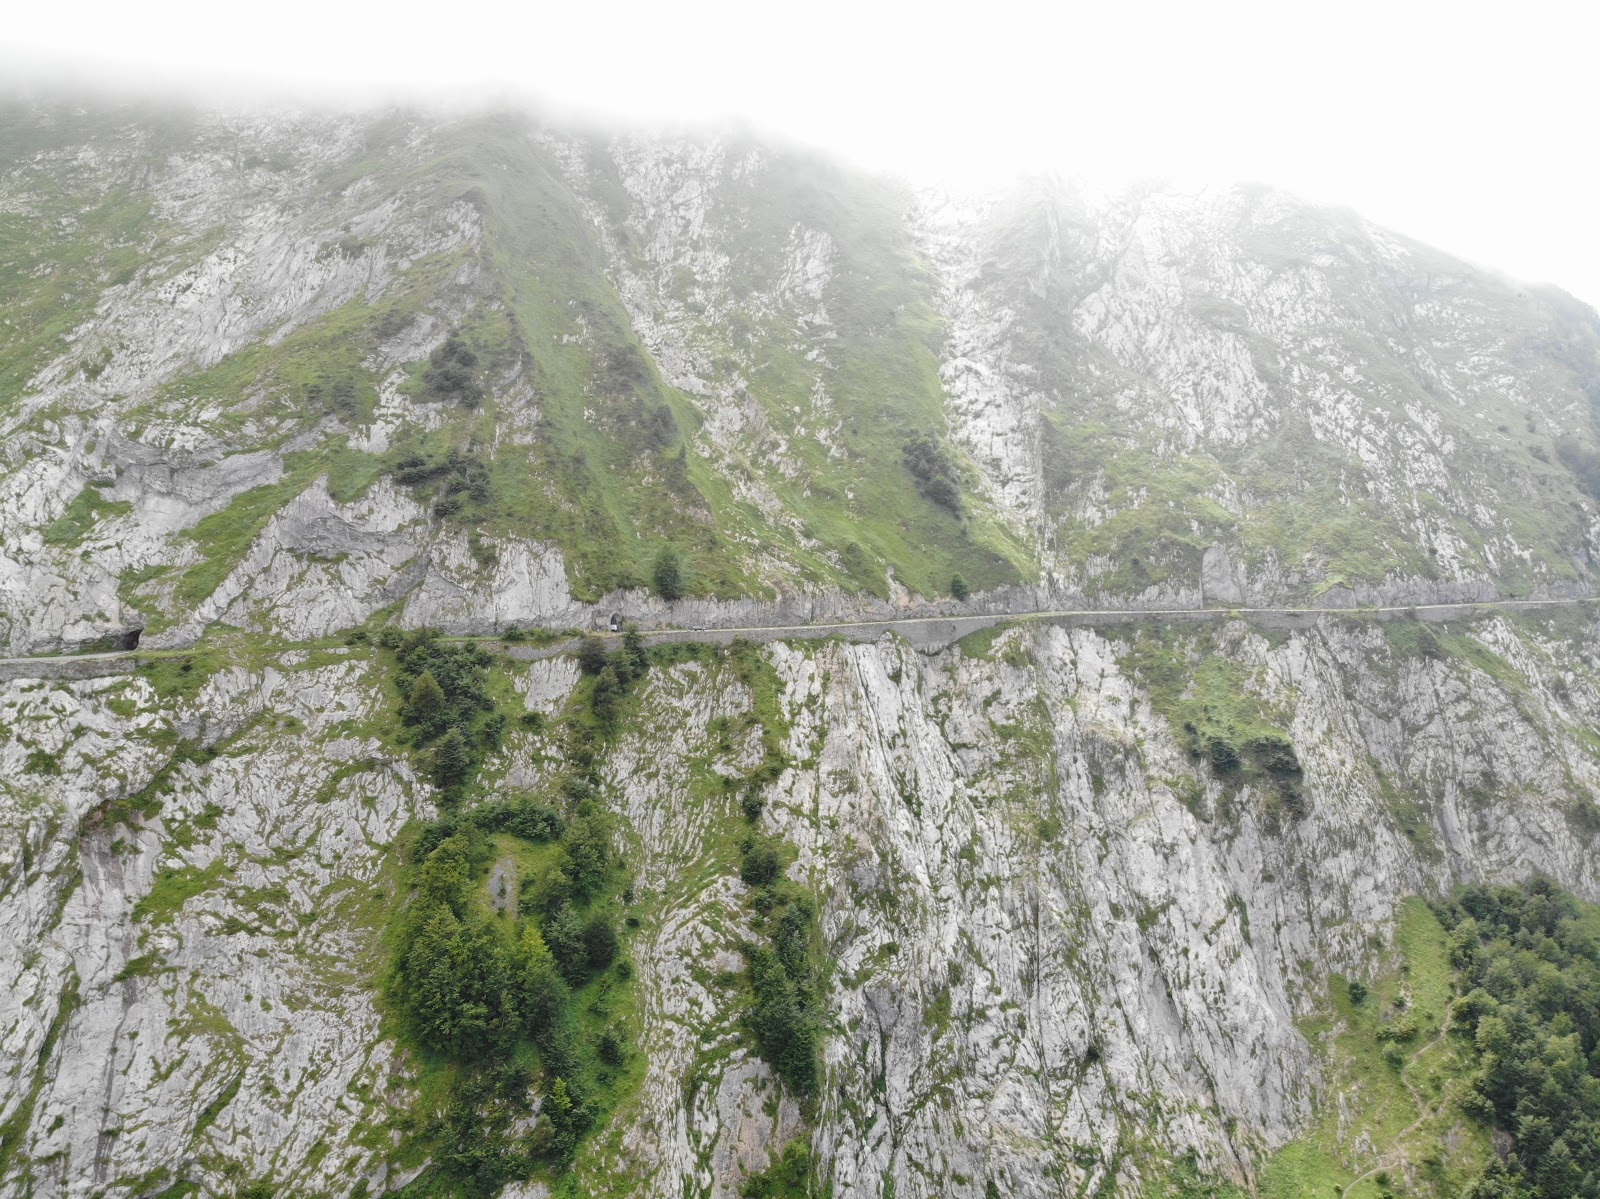 Cycling Col d'Aubisque  from Argeles Gazost - aerial drone photo from ravine of roadway and tunnel